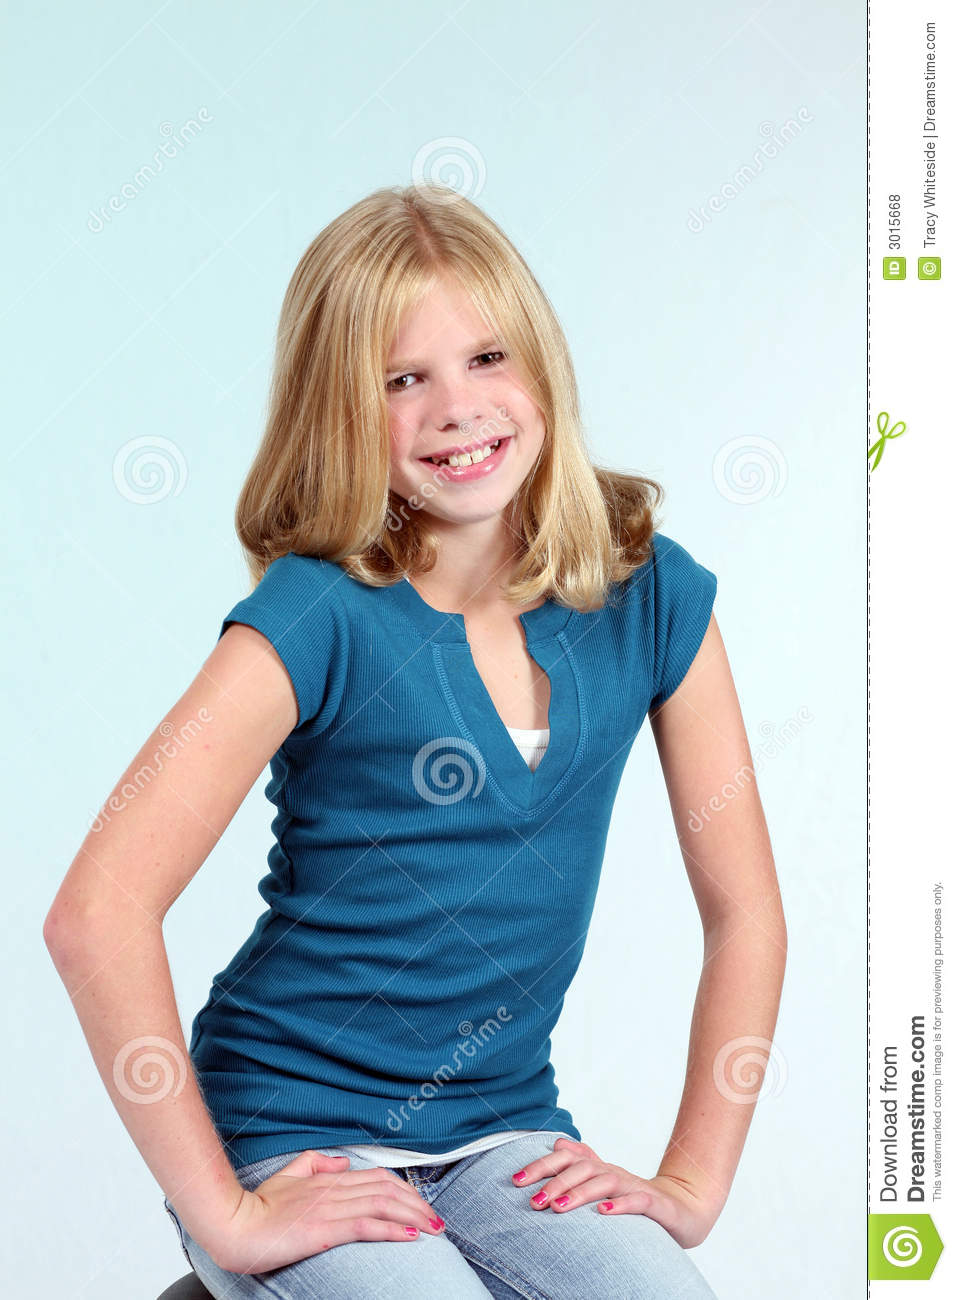 Young Pre Teen Girl Female Woman Torso Vertical Format: Golden Girl Stock Photo. Image Of Photo, Attractive